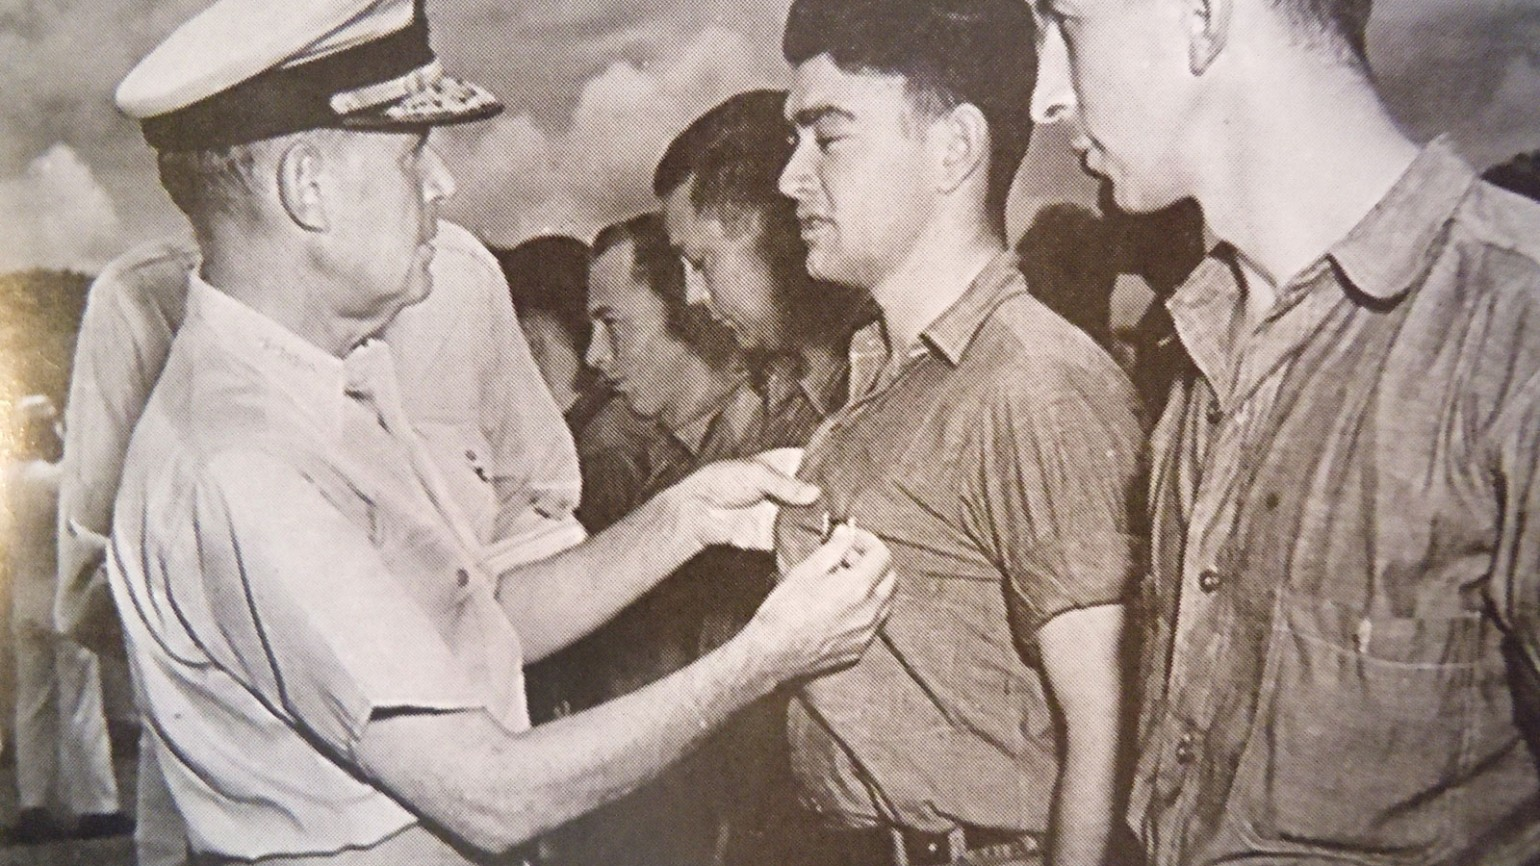 Admiral Spruance presenting the surviving crew members with the Purple Heart. Photo courtesy of Alfred J. Sedivi Collection - USNI.